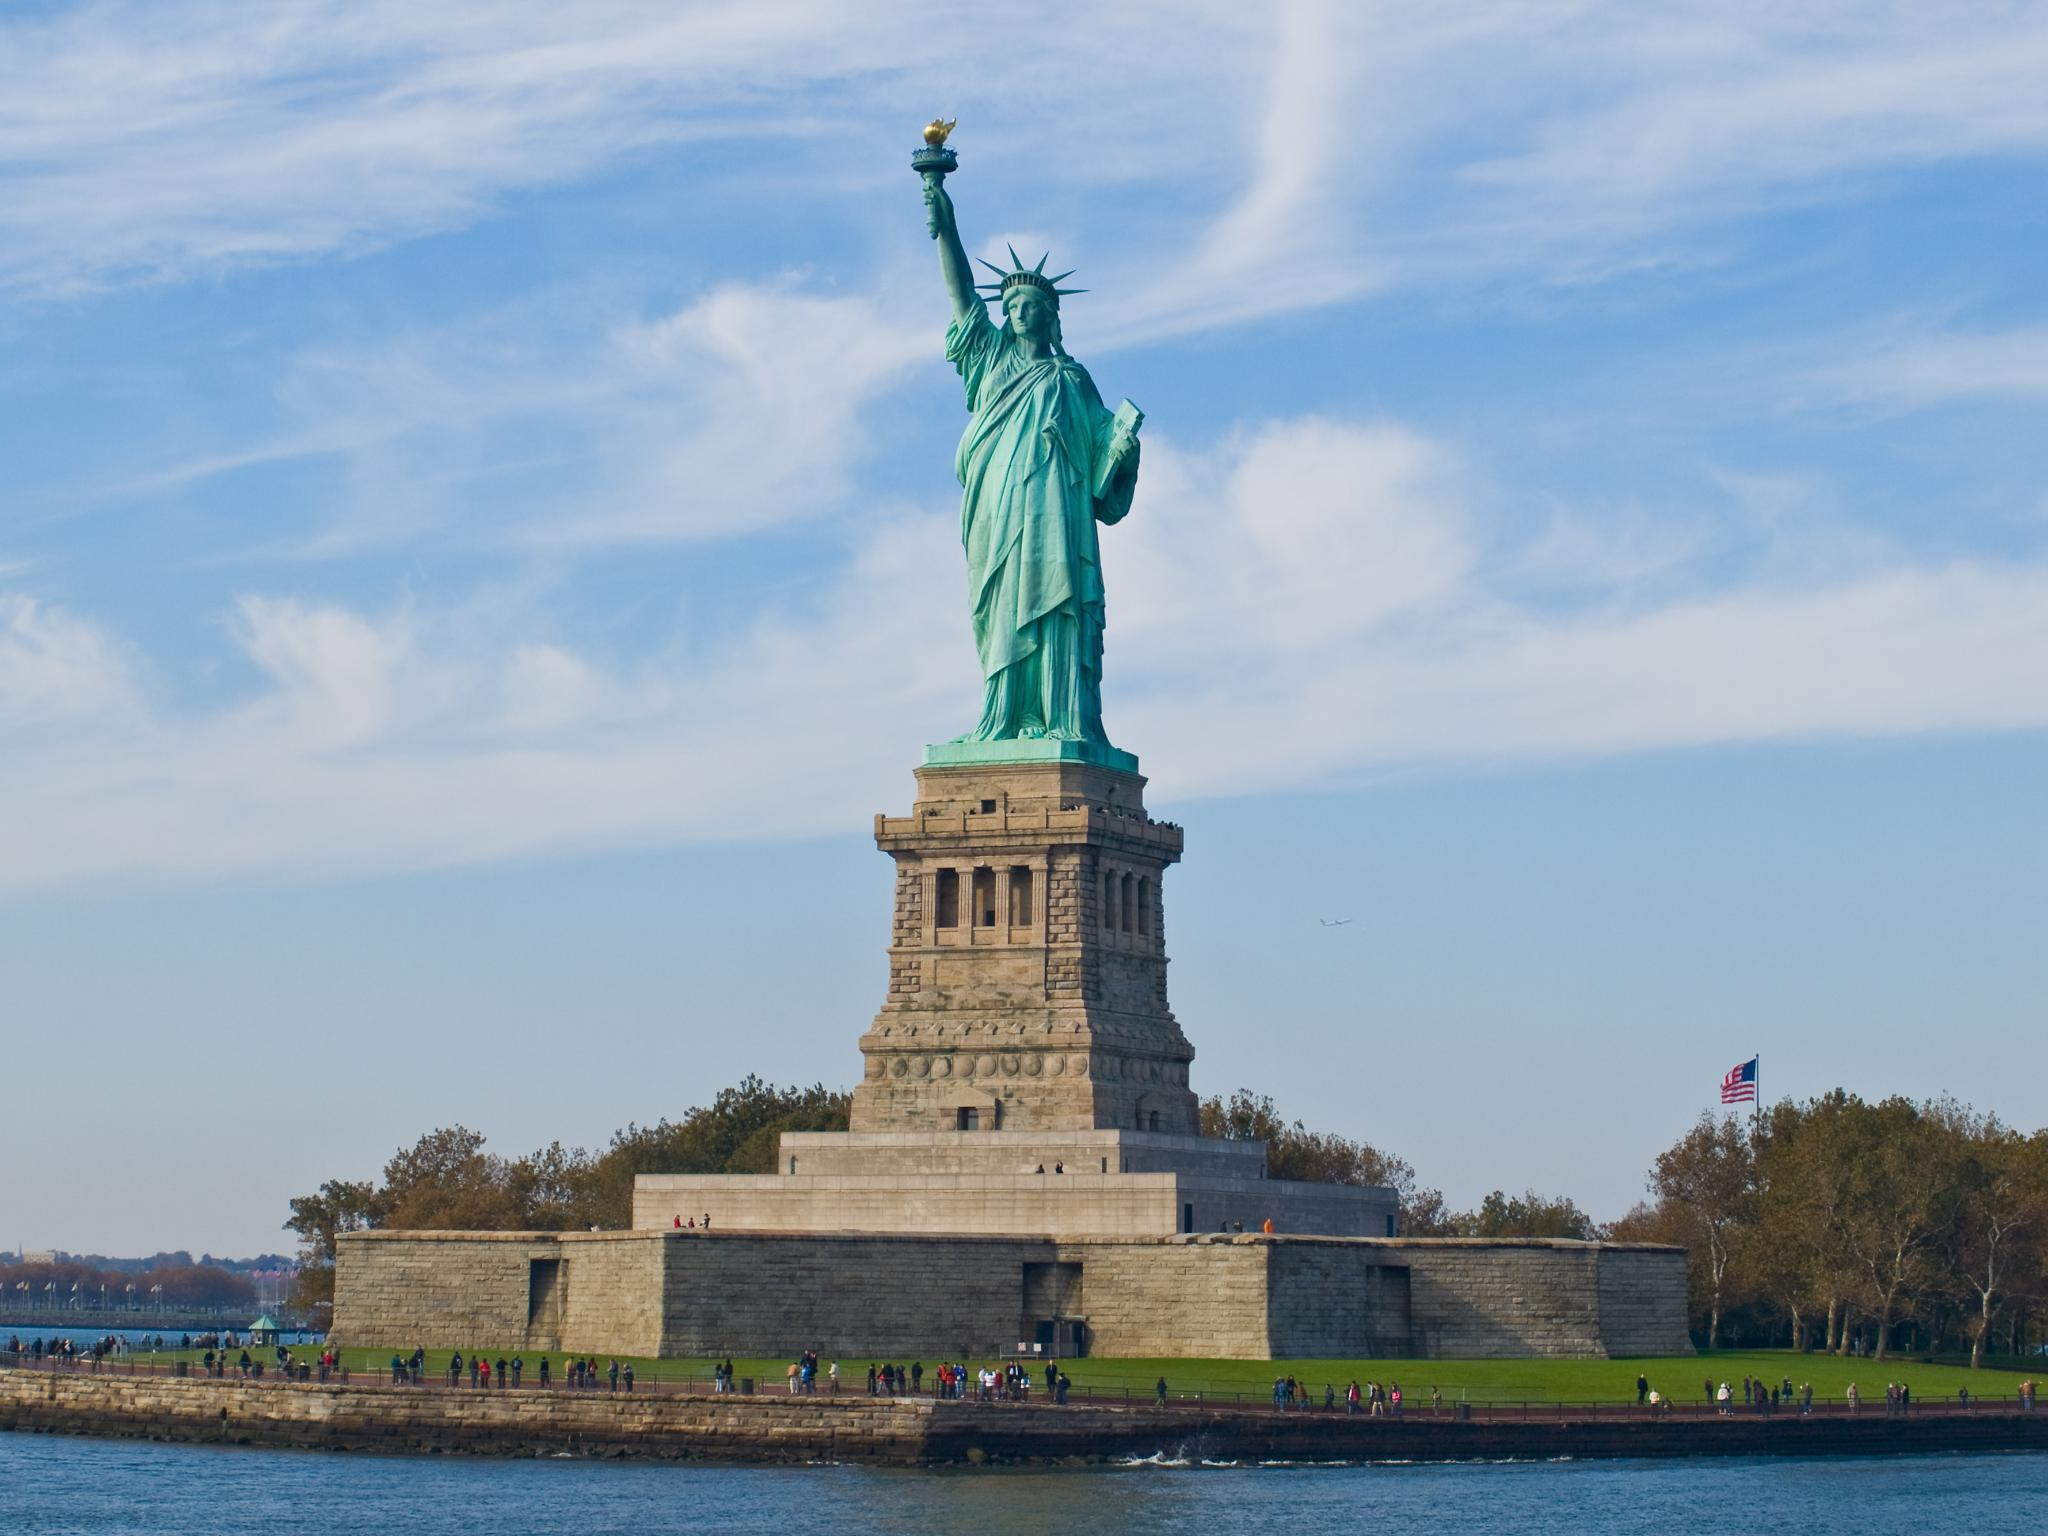 What Does the Statue of Liberty Hold in Her Left Hand?